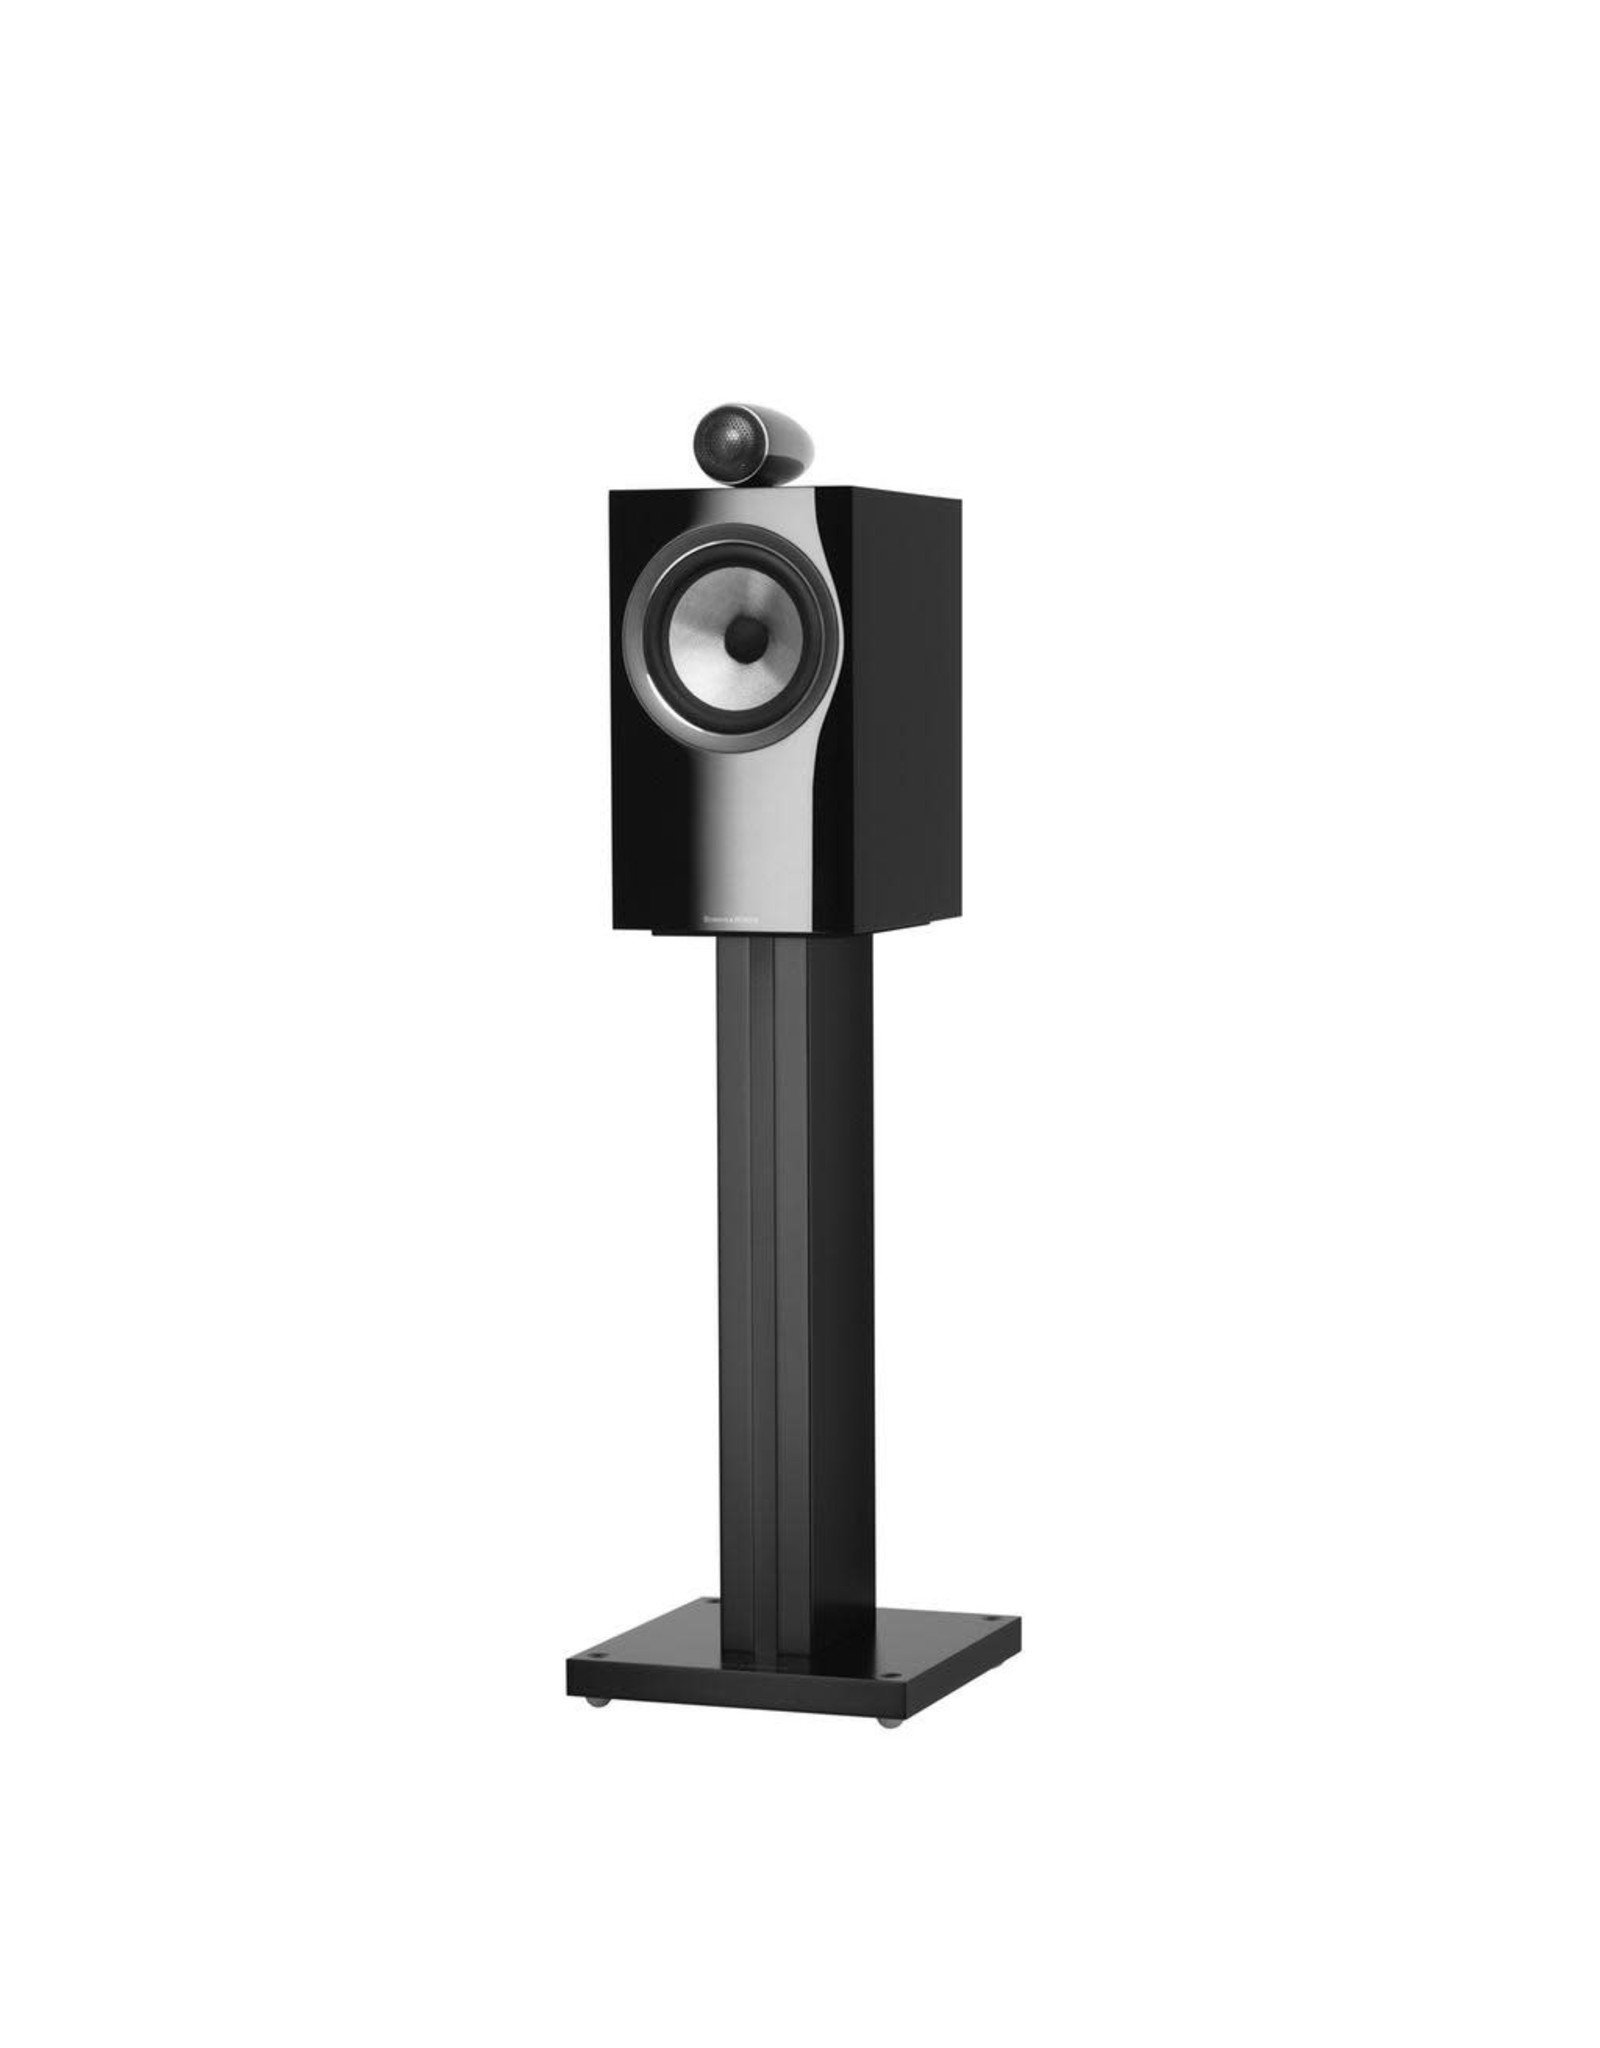 BOWERS & WILKINS B&W 705 S2 2-Way Shelf/Stand Mount Speakers (pair)